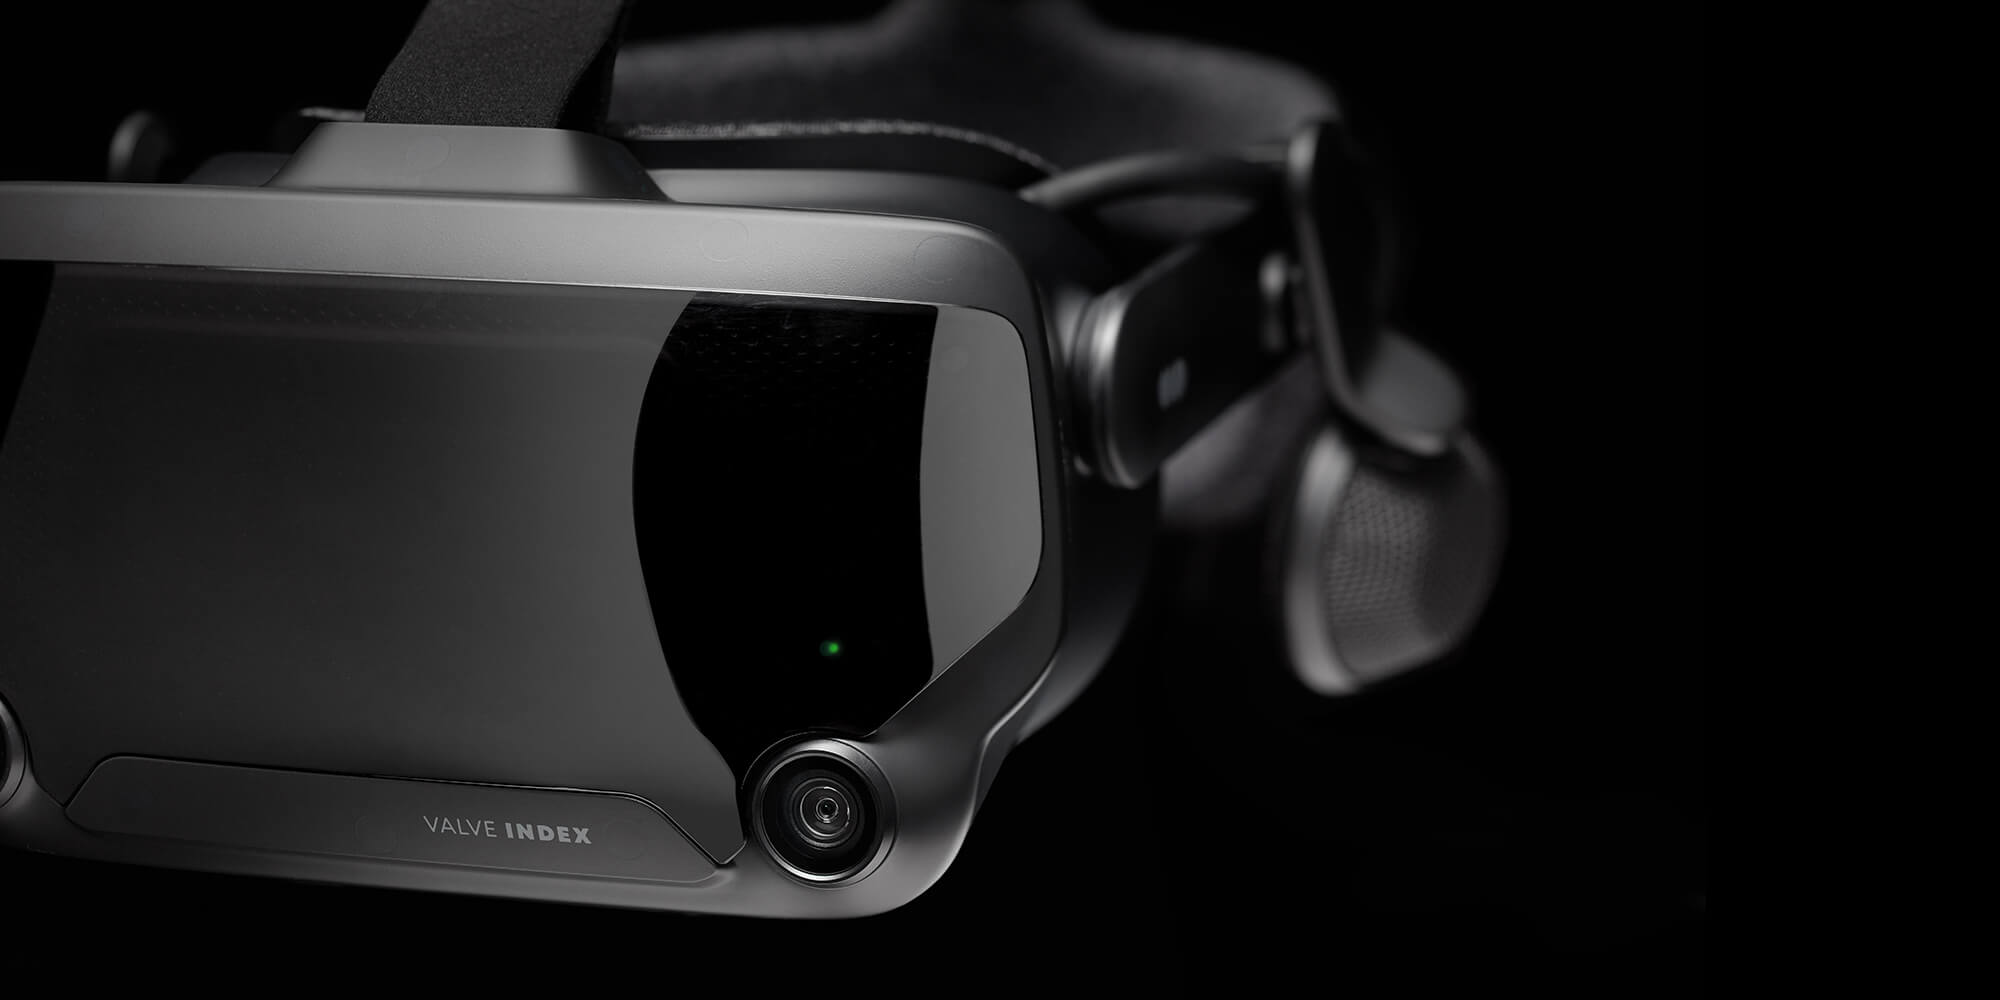 Valve Index VR headset ships June 28 for $499-$999